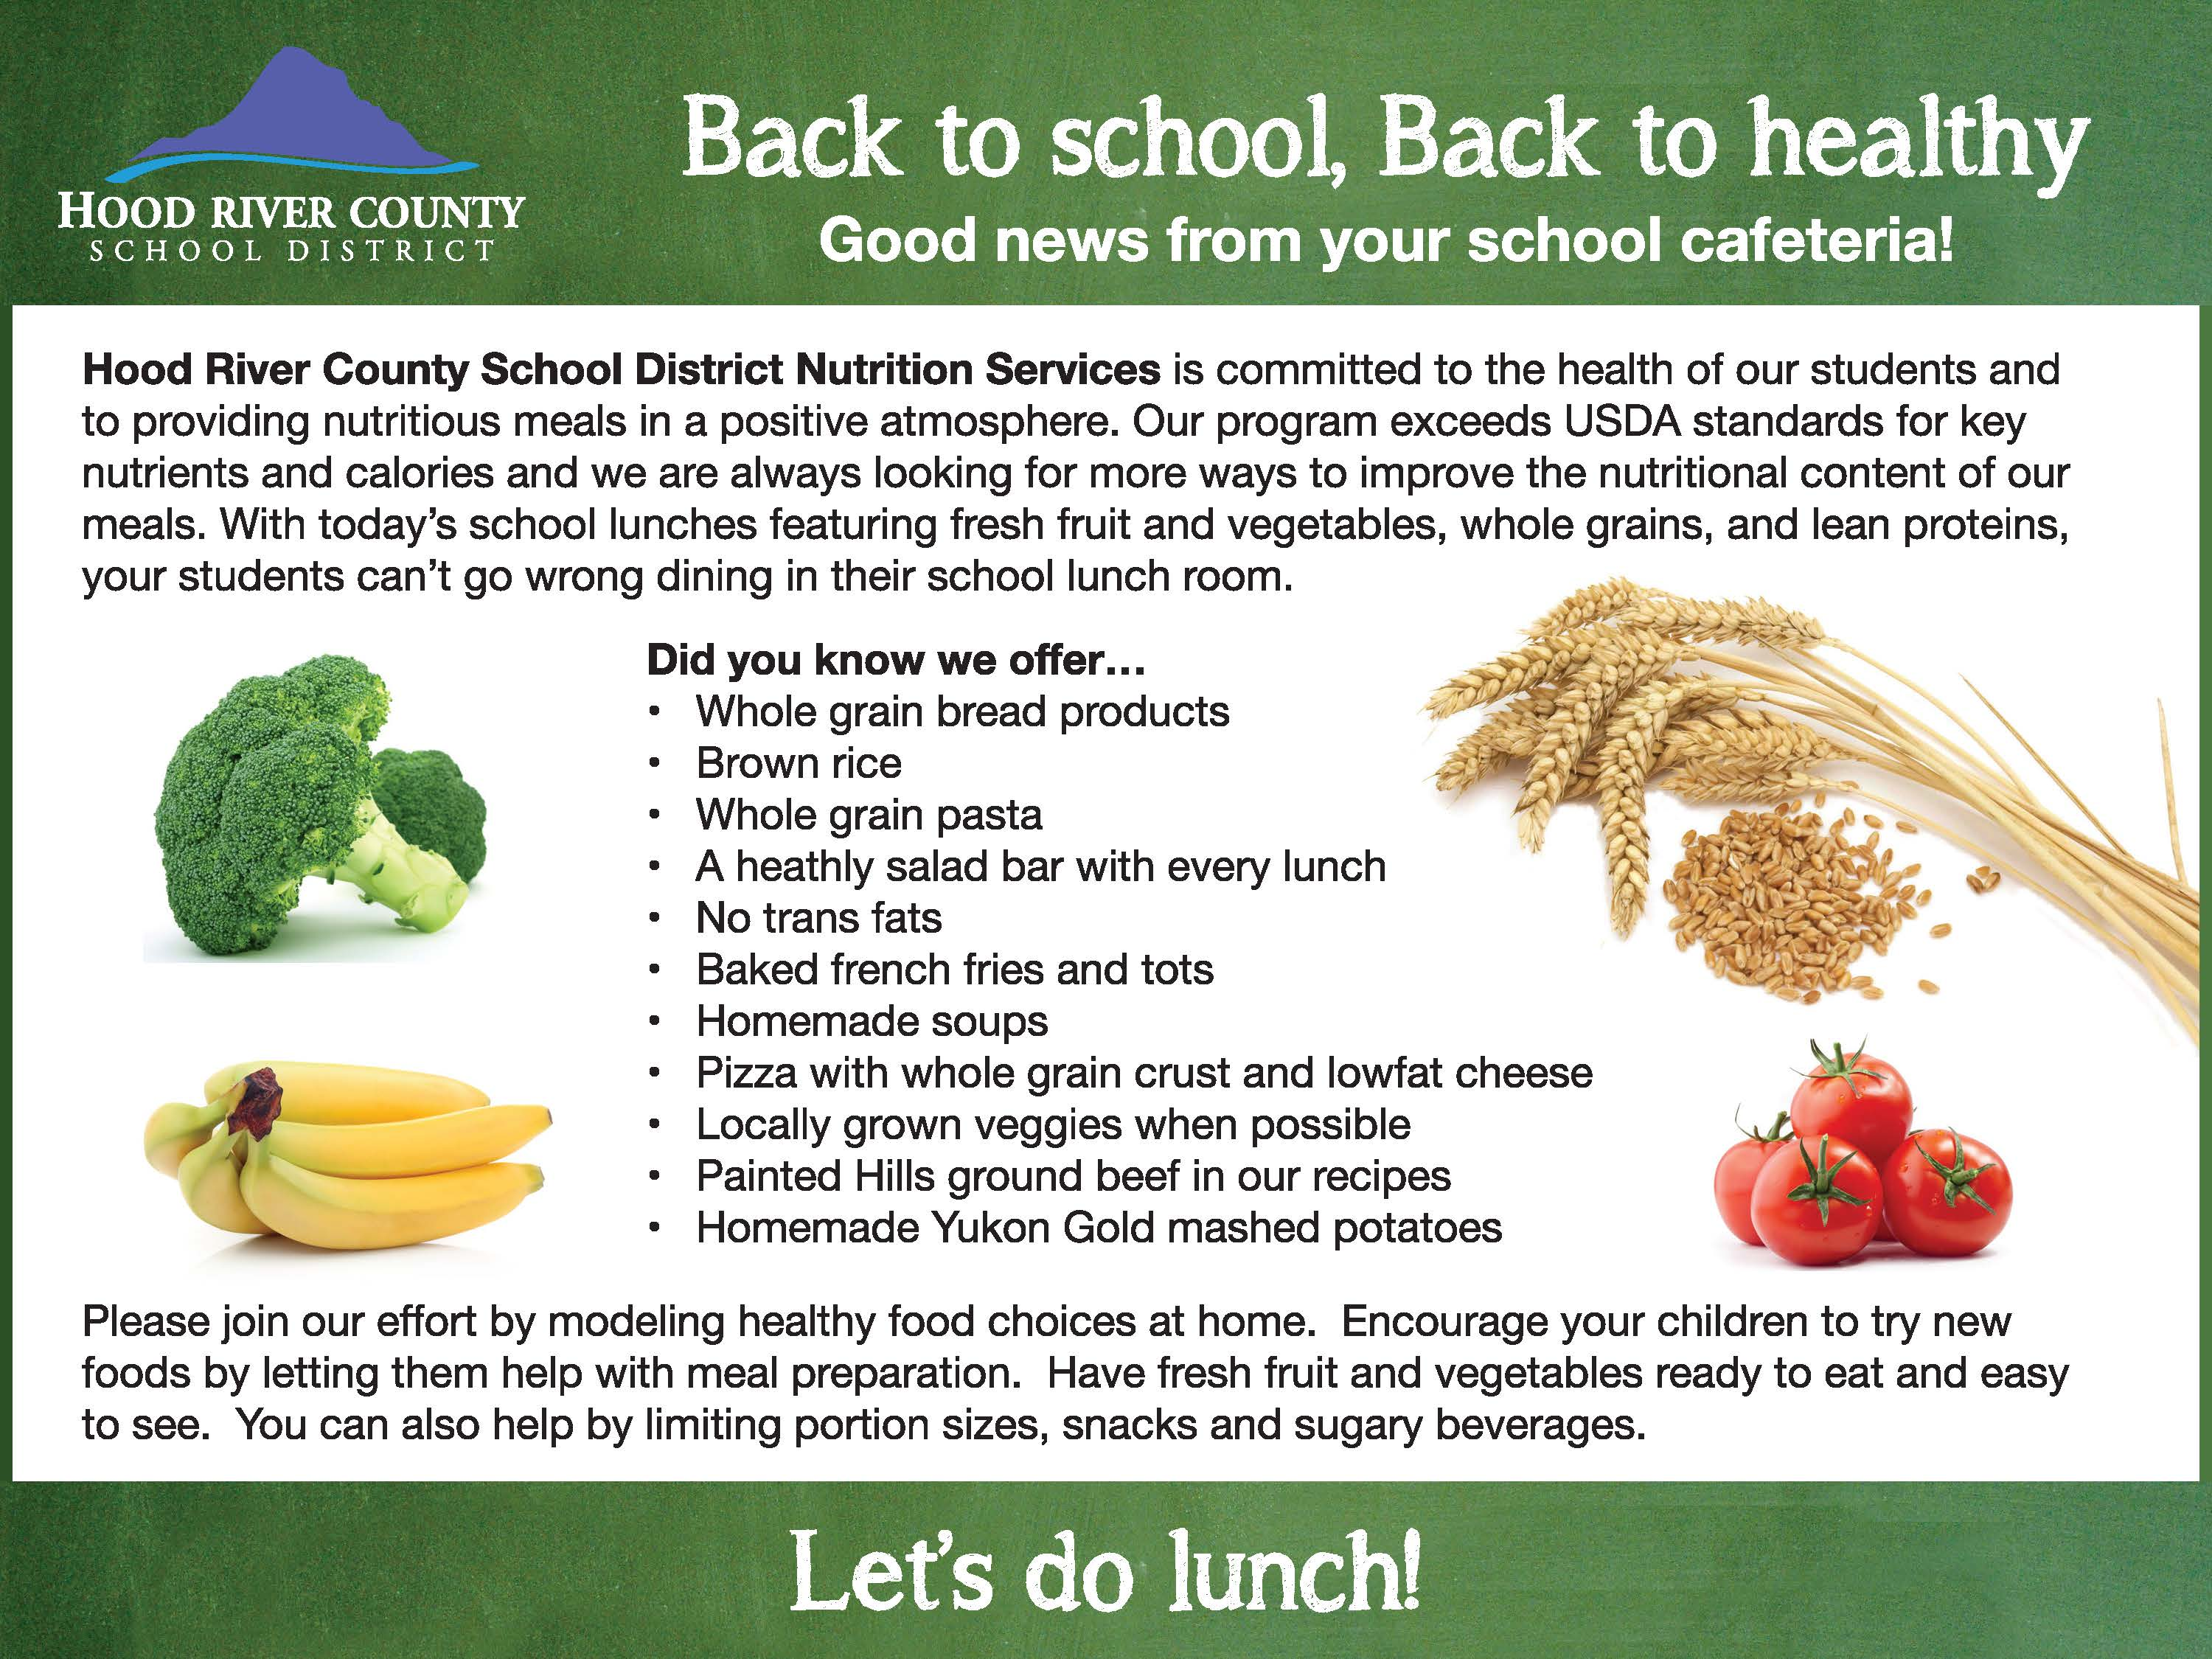 HRCSD Nutrition Services